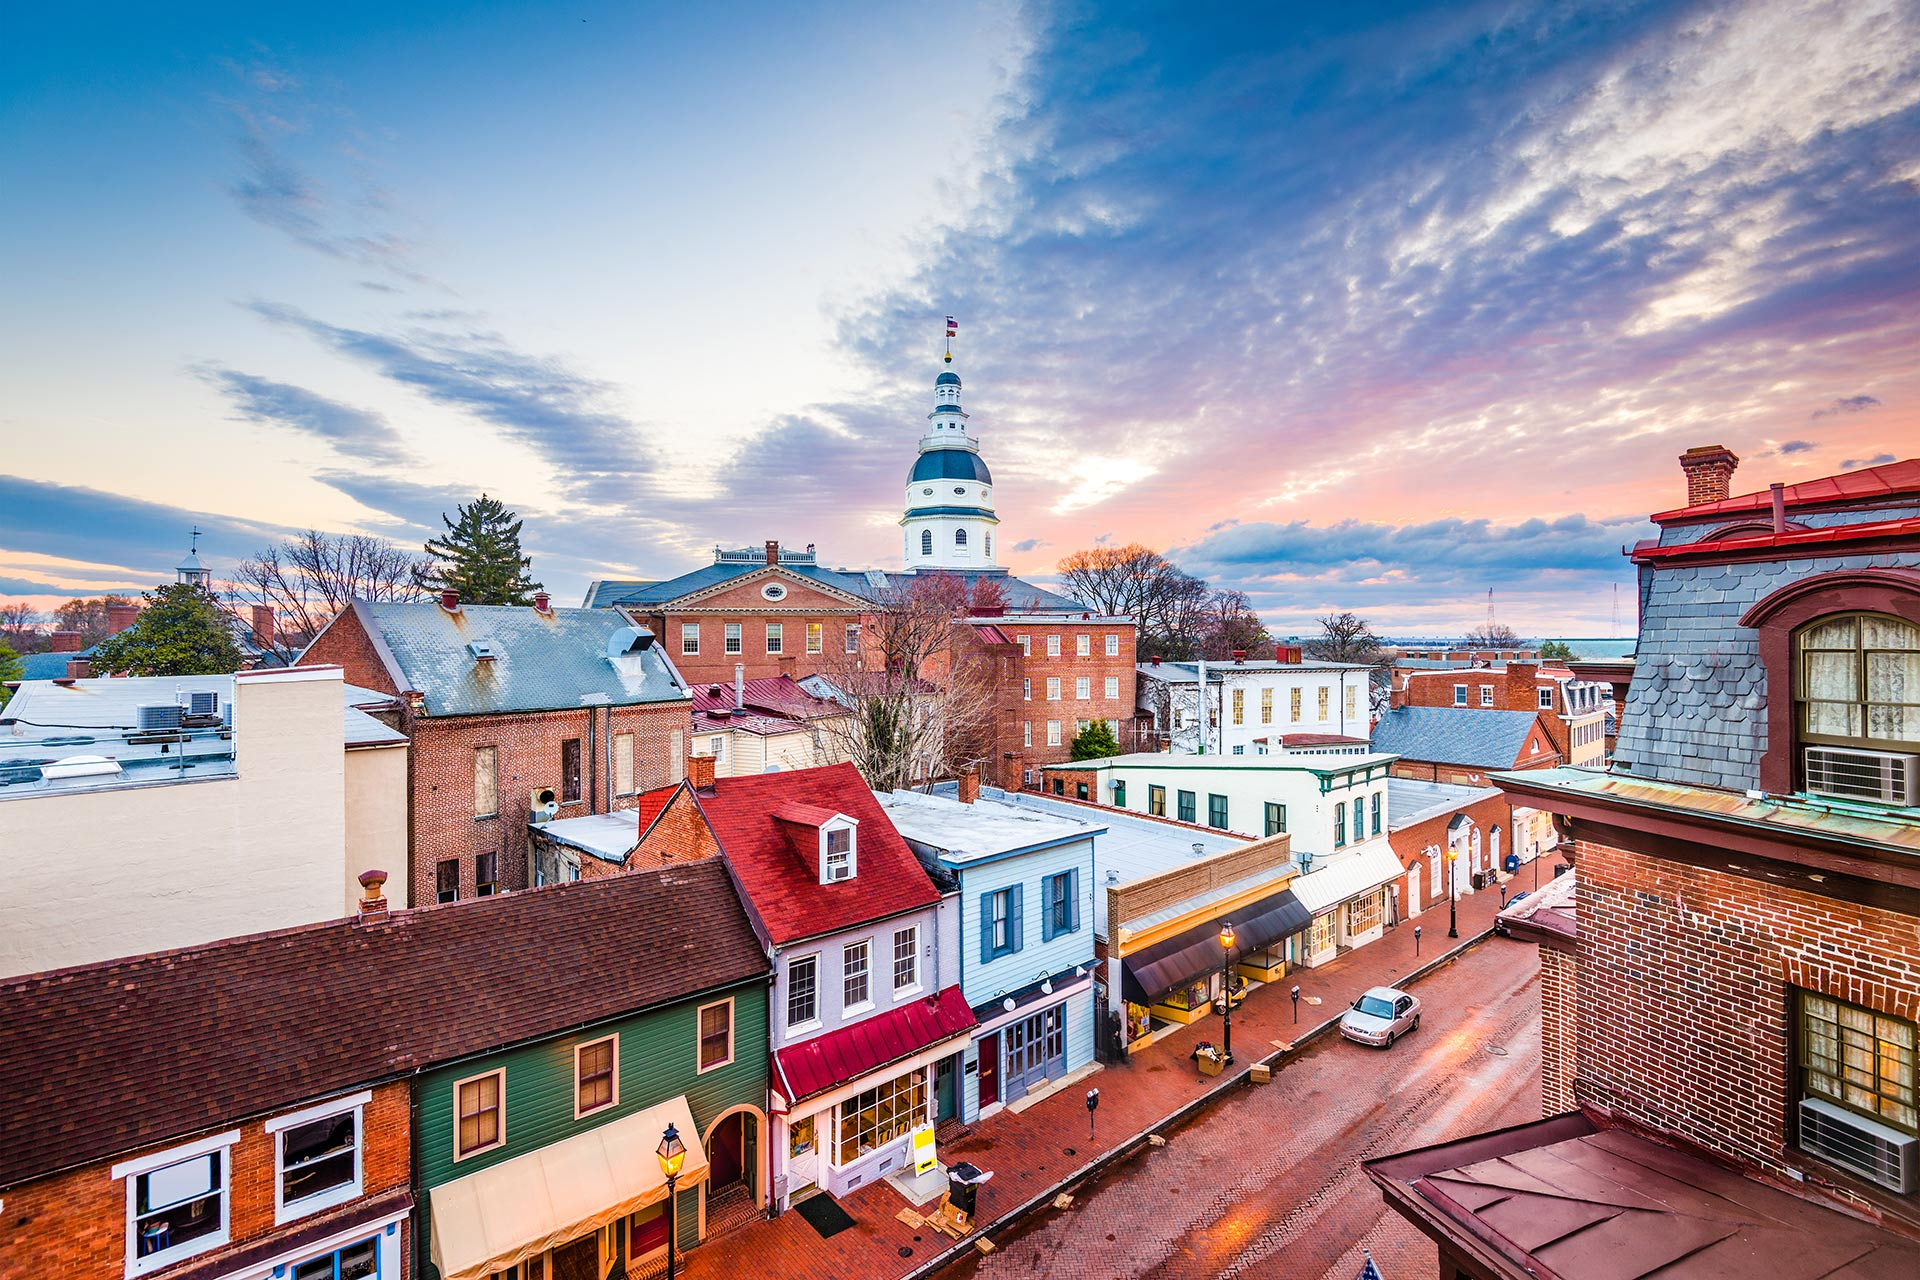 Annapolis, Maryland; Photo Courtesy of Sean Pavone/Shutterstock.com